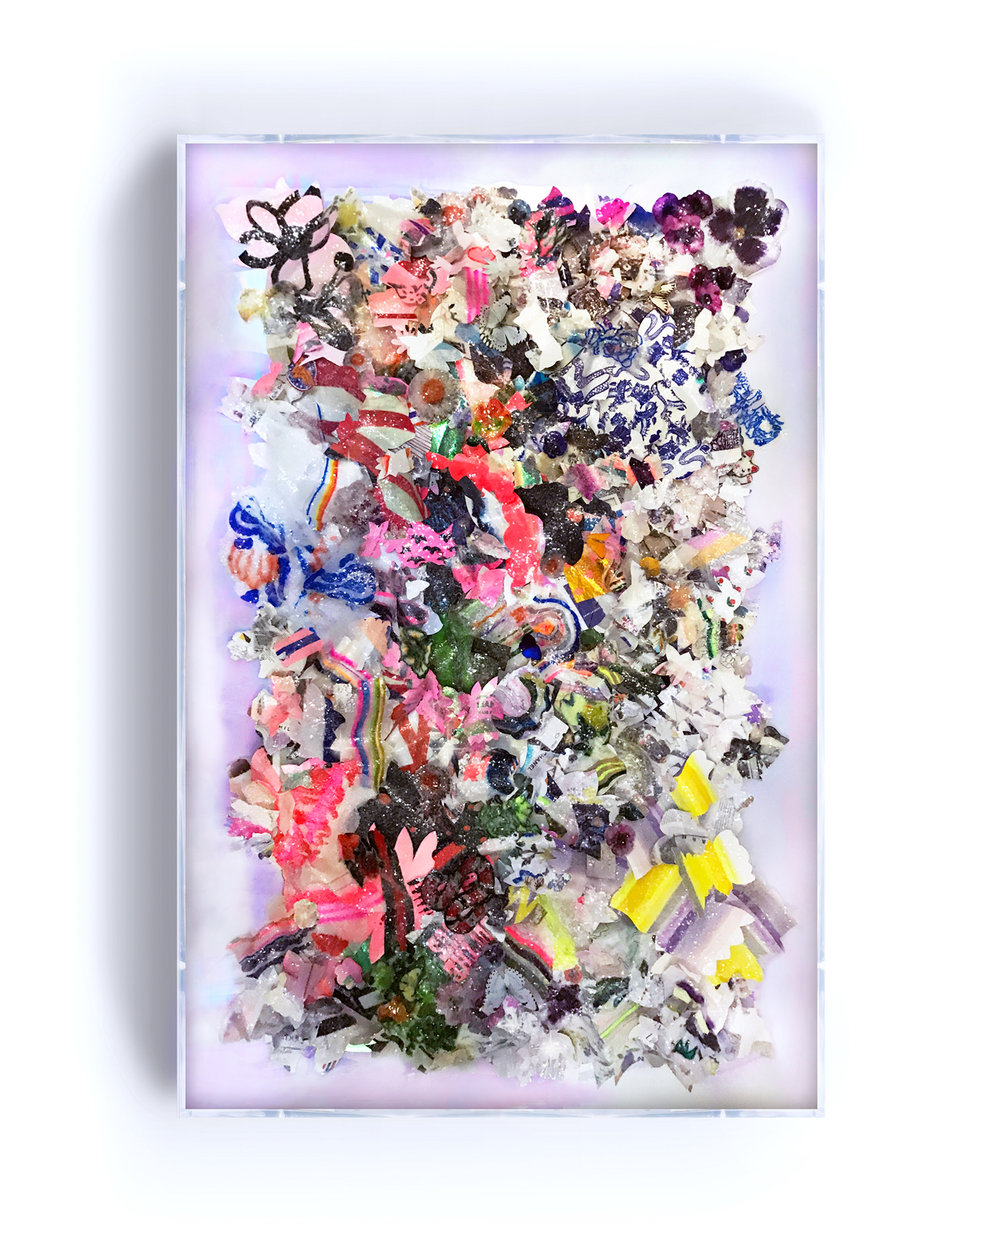 """IMAGINE,"" 48X72, HAND-CUT, MIXED-MEDIA COLLAGE WITH BUTTERFLIES AND GLASS CRYSTALS ON IRIDESCENT ACRYLIC."